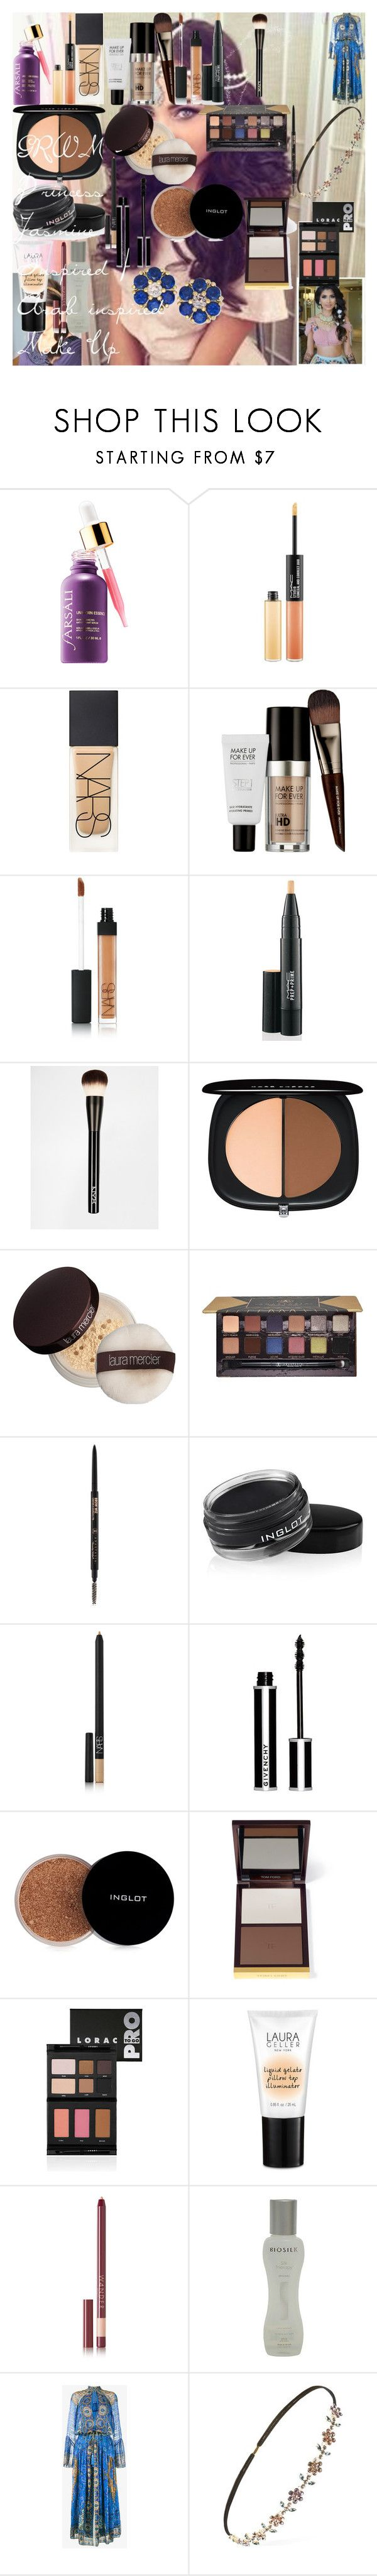 """""""GRWM - Princess Jasmine Inspired / Arab inspired Make Up"""" by oroartye-1 on Polyvore featuring beauty, MAC Cosmetics, NARS Cosmetics, MAKE UP FOR EVER, NYX, Marc Jacobs, Laura Mercier, Anastasia Beverly Hills, Inglot and Givenchy"""